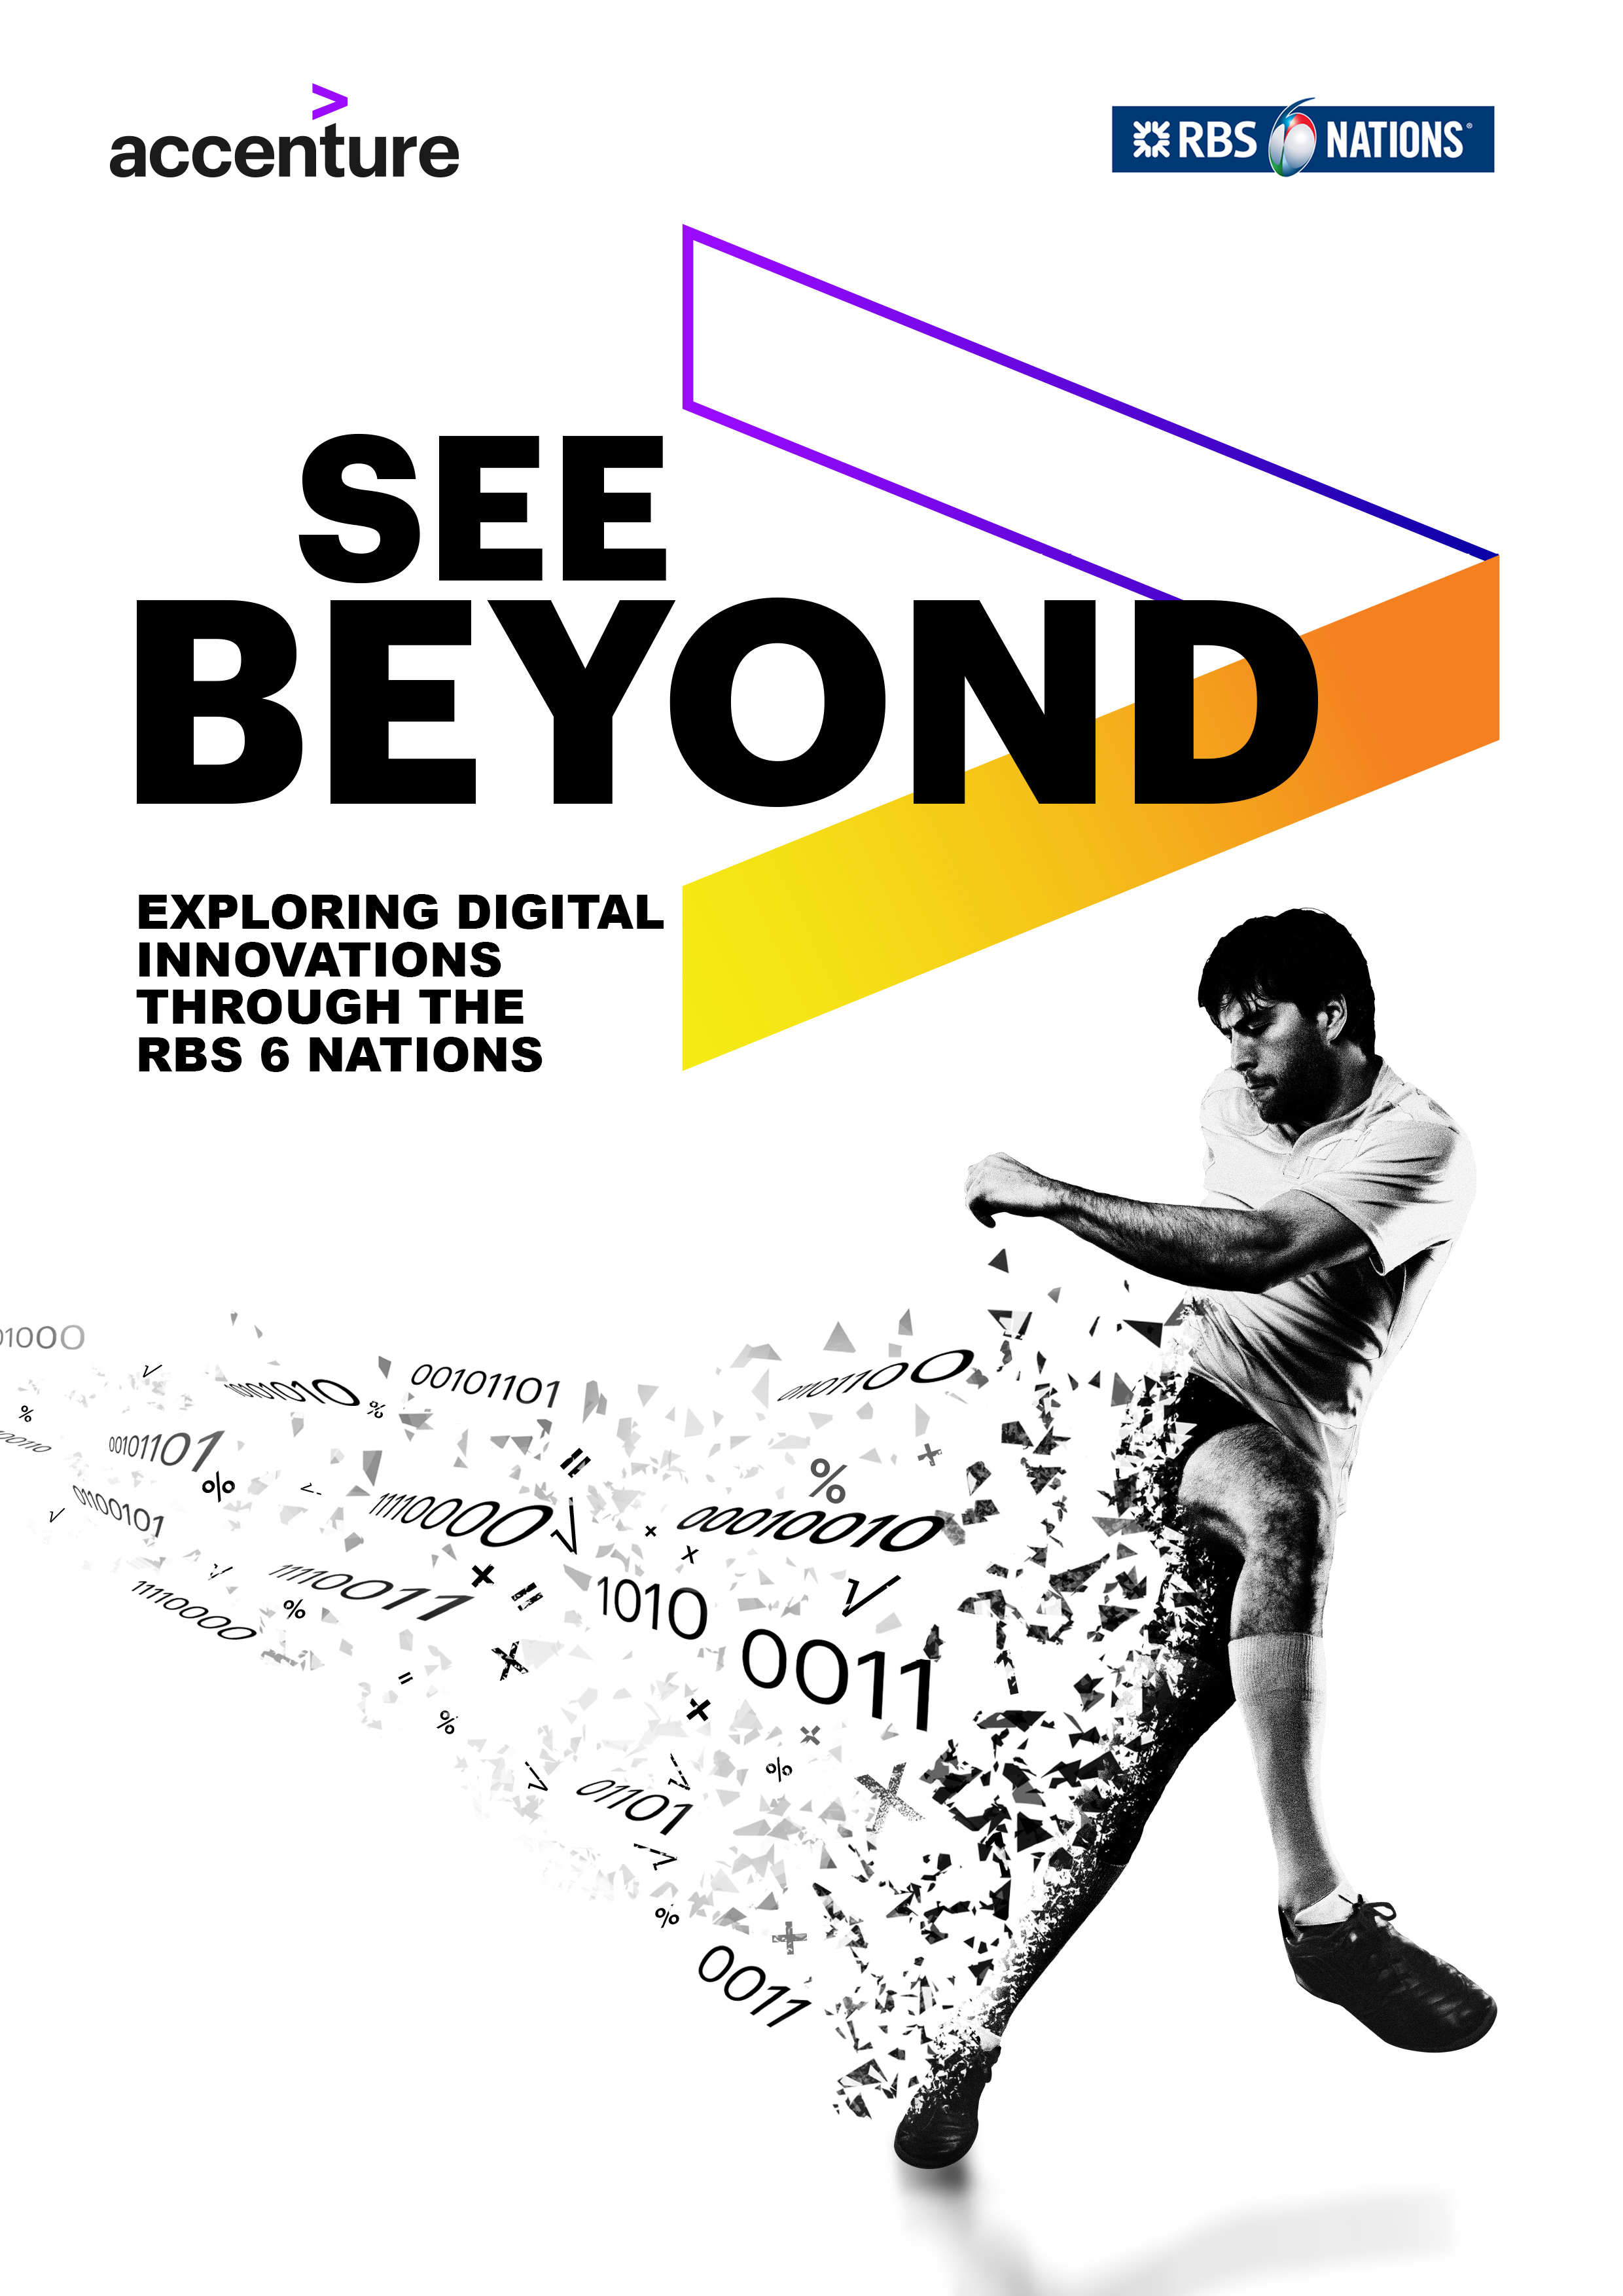 See Beyond: Exploring Digital Innovations Through the RBS 6 Nations